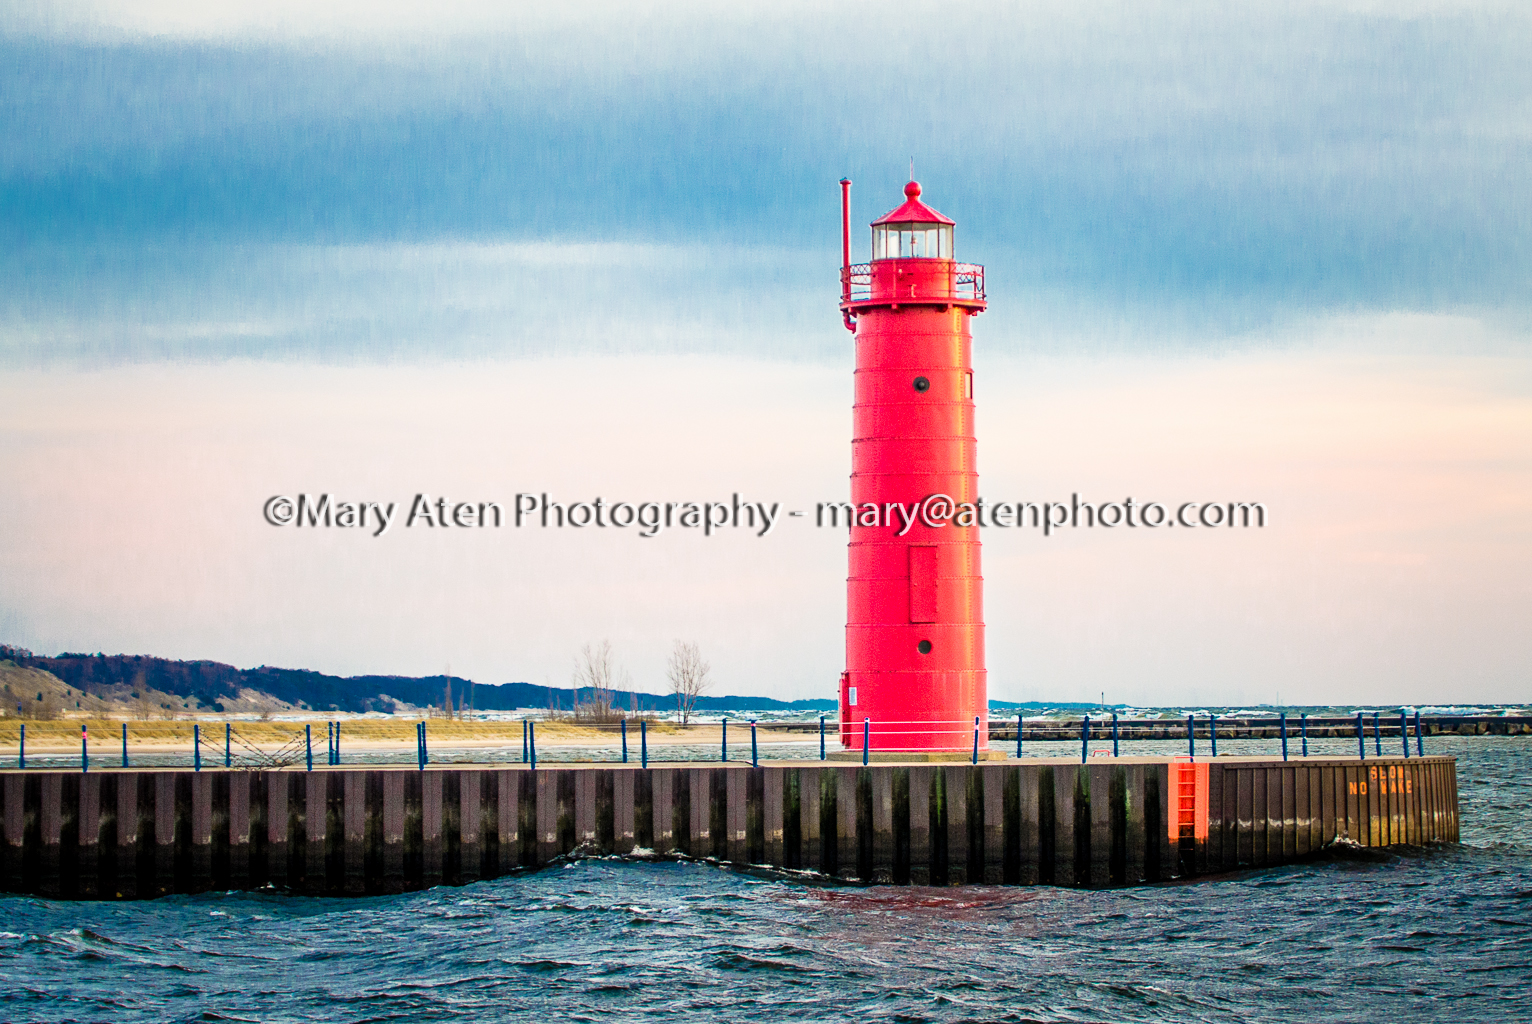 Photo Of Red Lighthouse In Muskegon Michigan Mary Aten